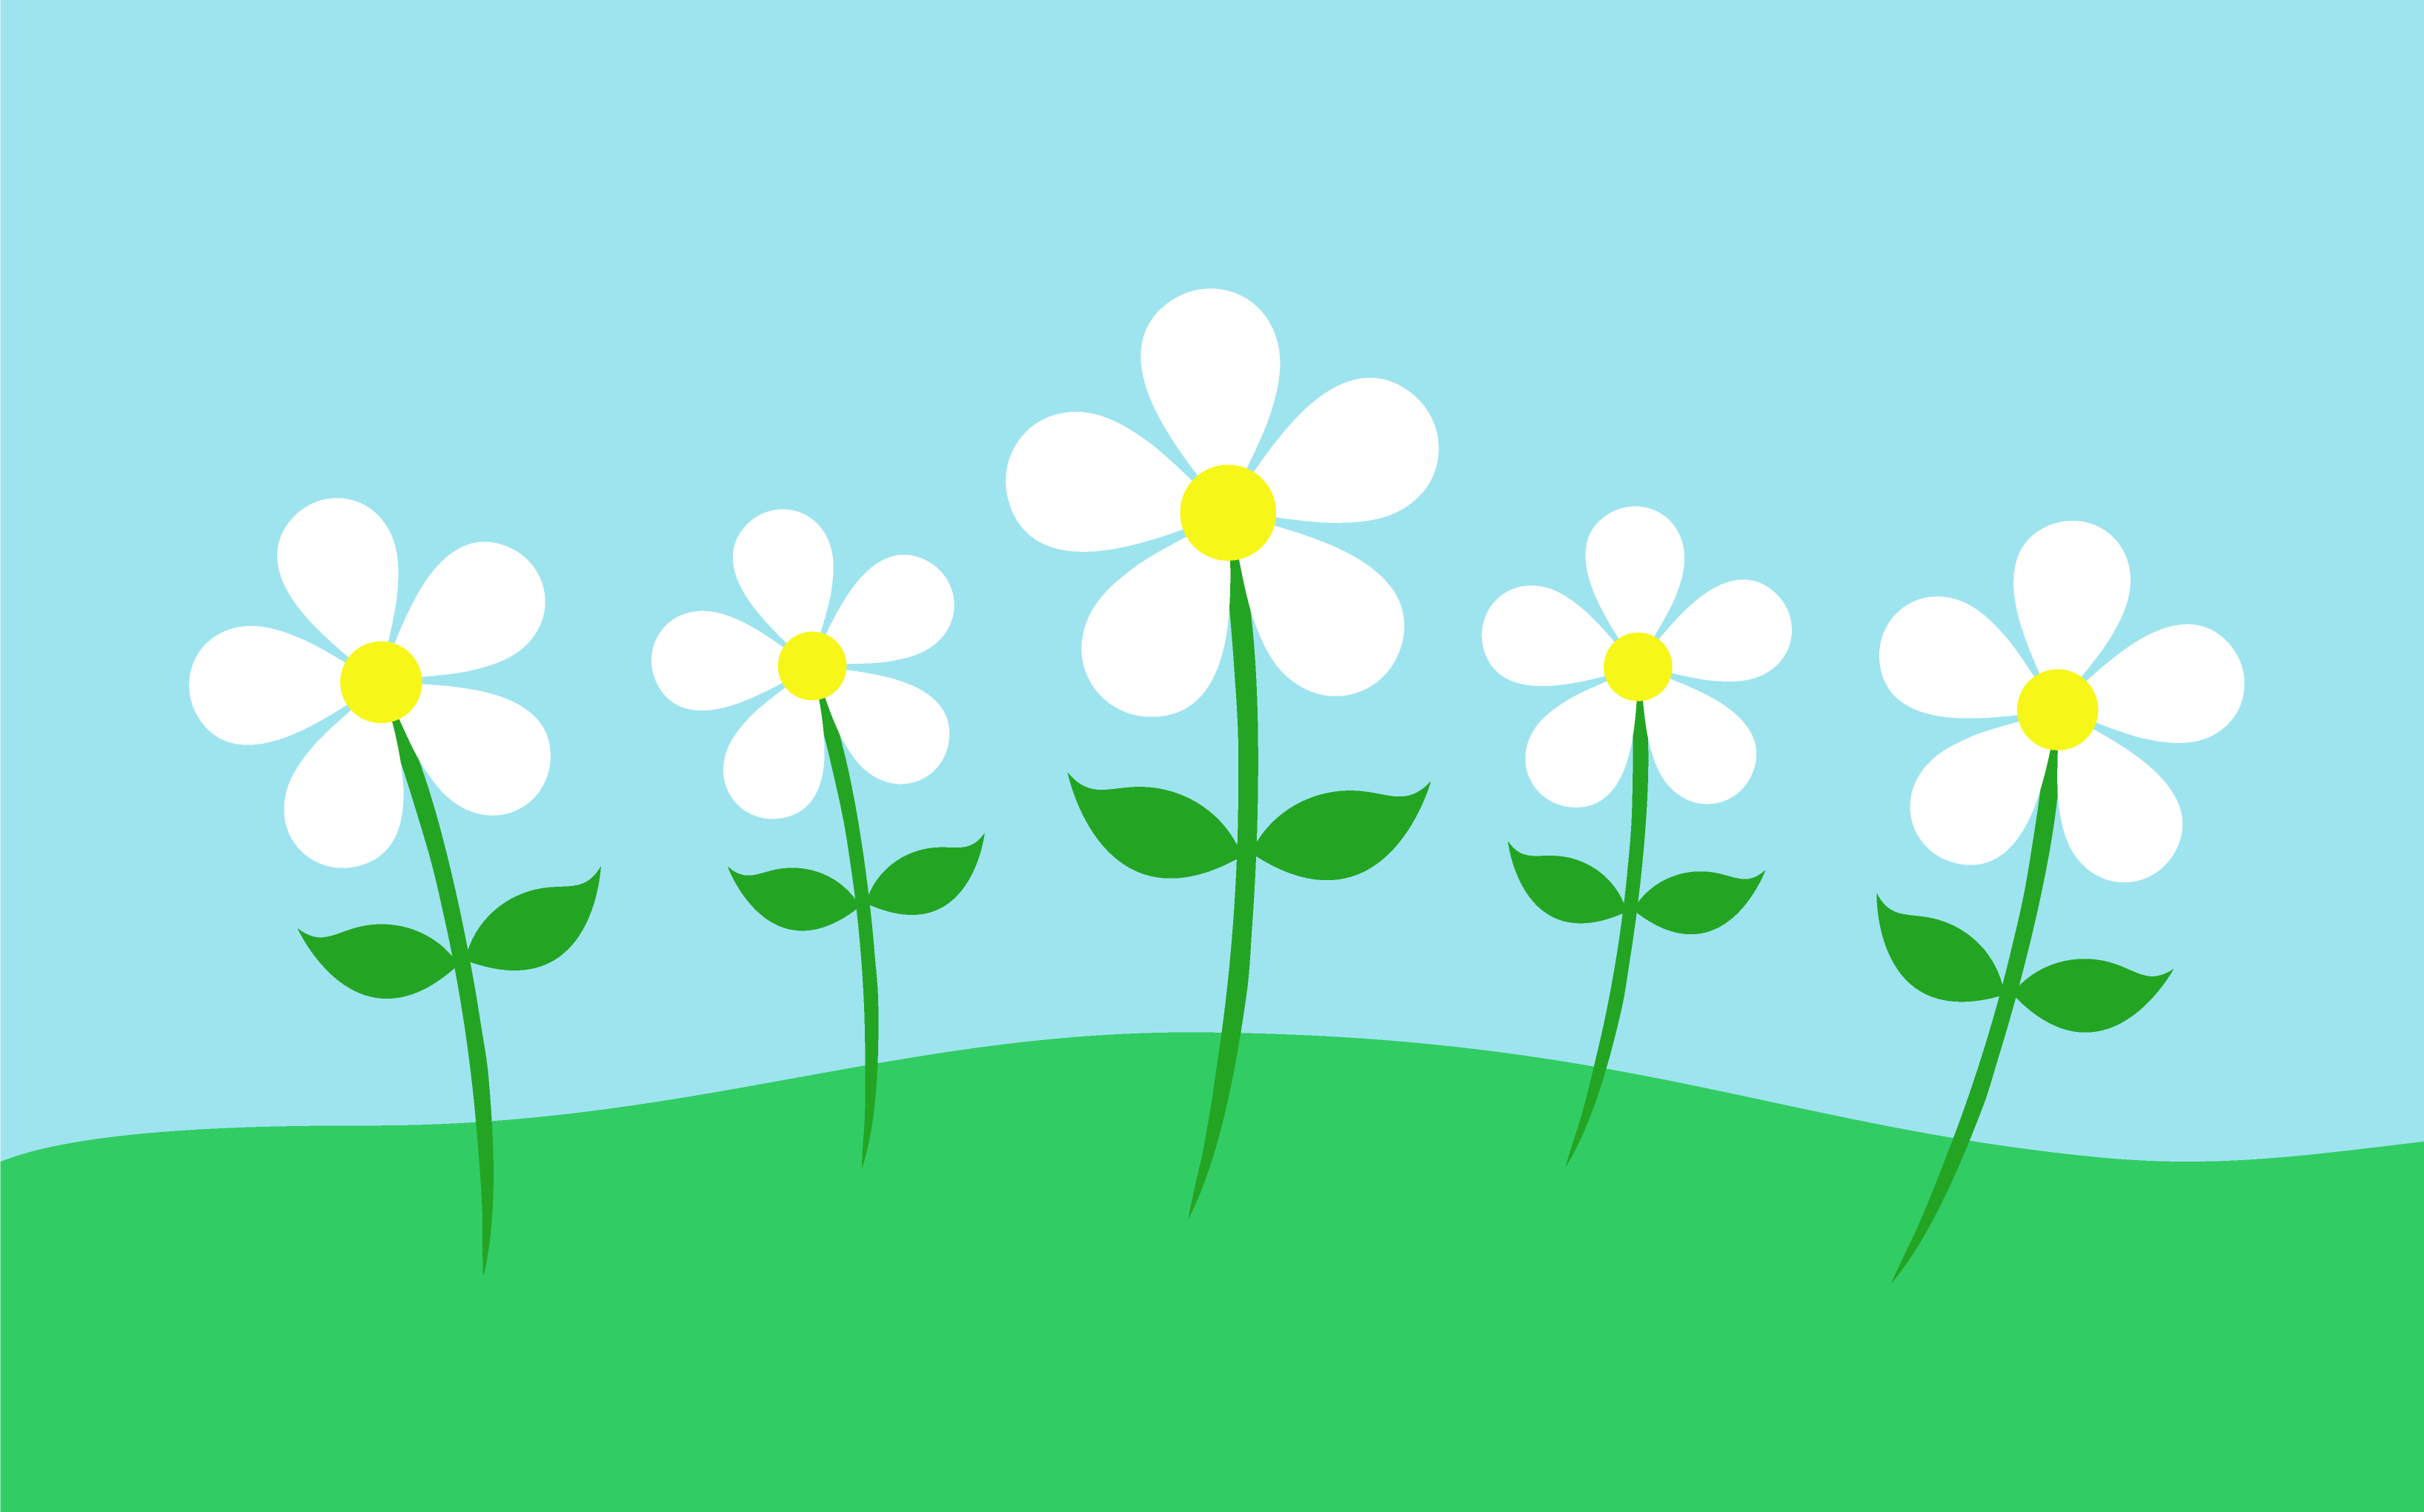 Daisy clipart landscape. Flowers in simple free